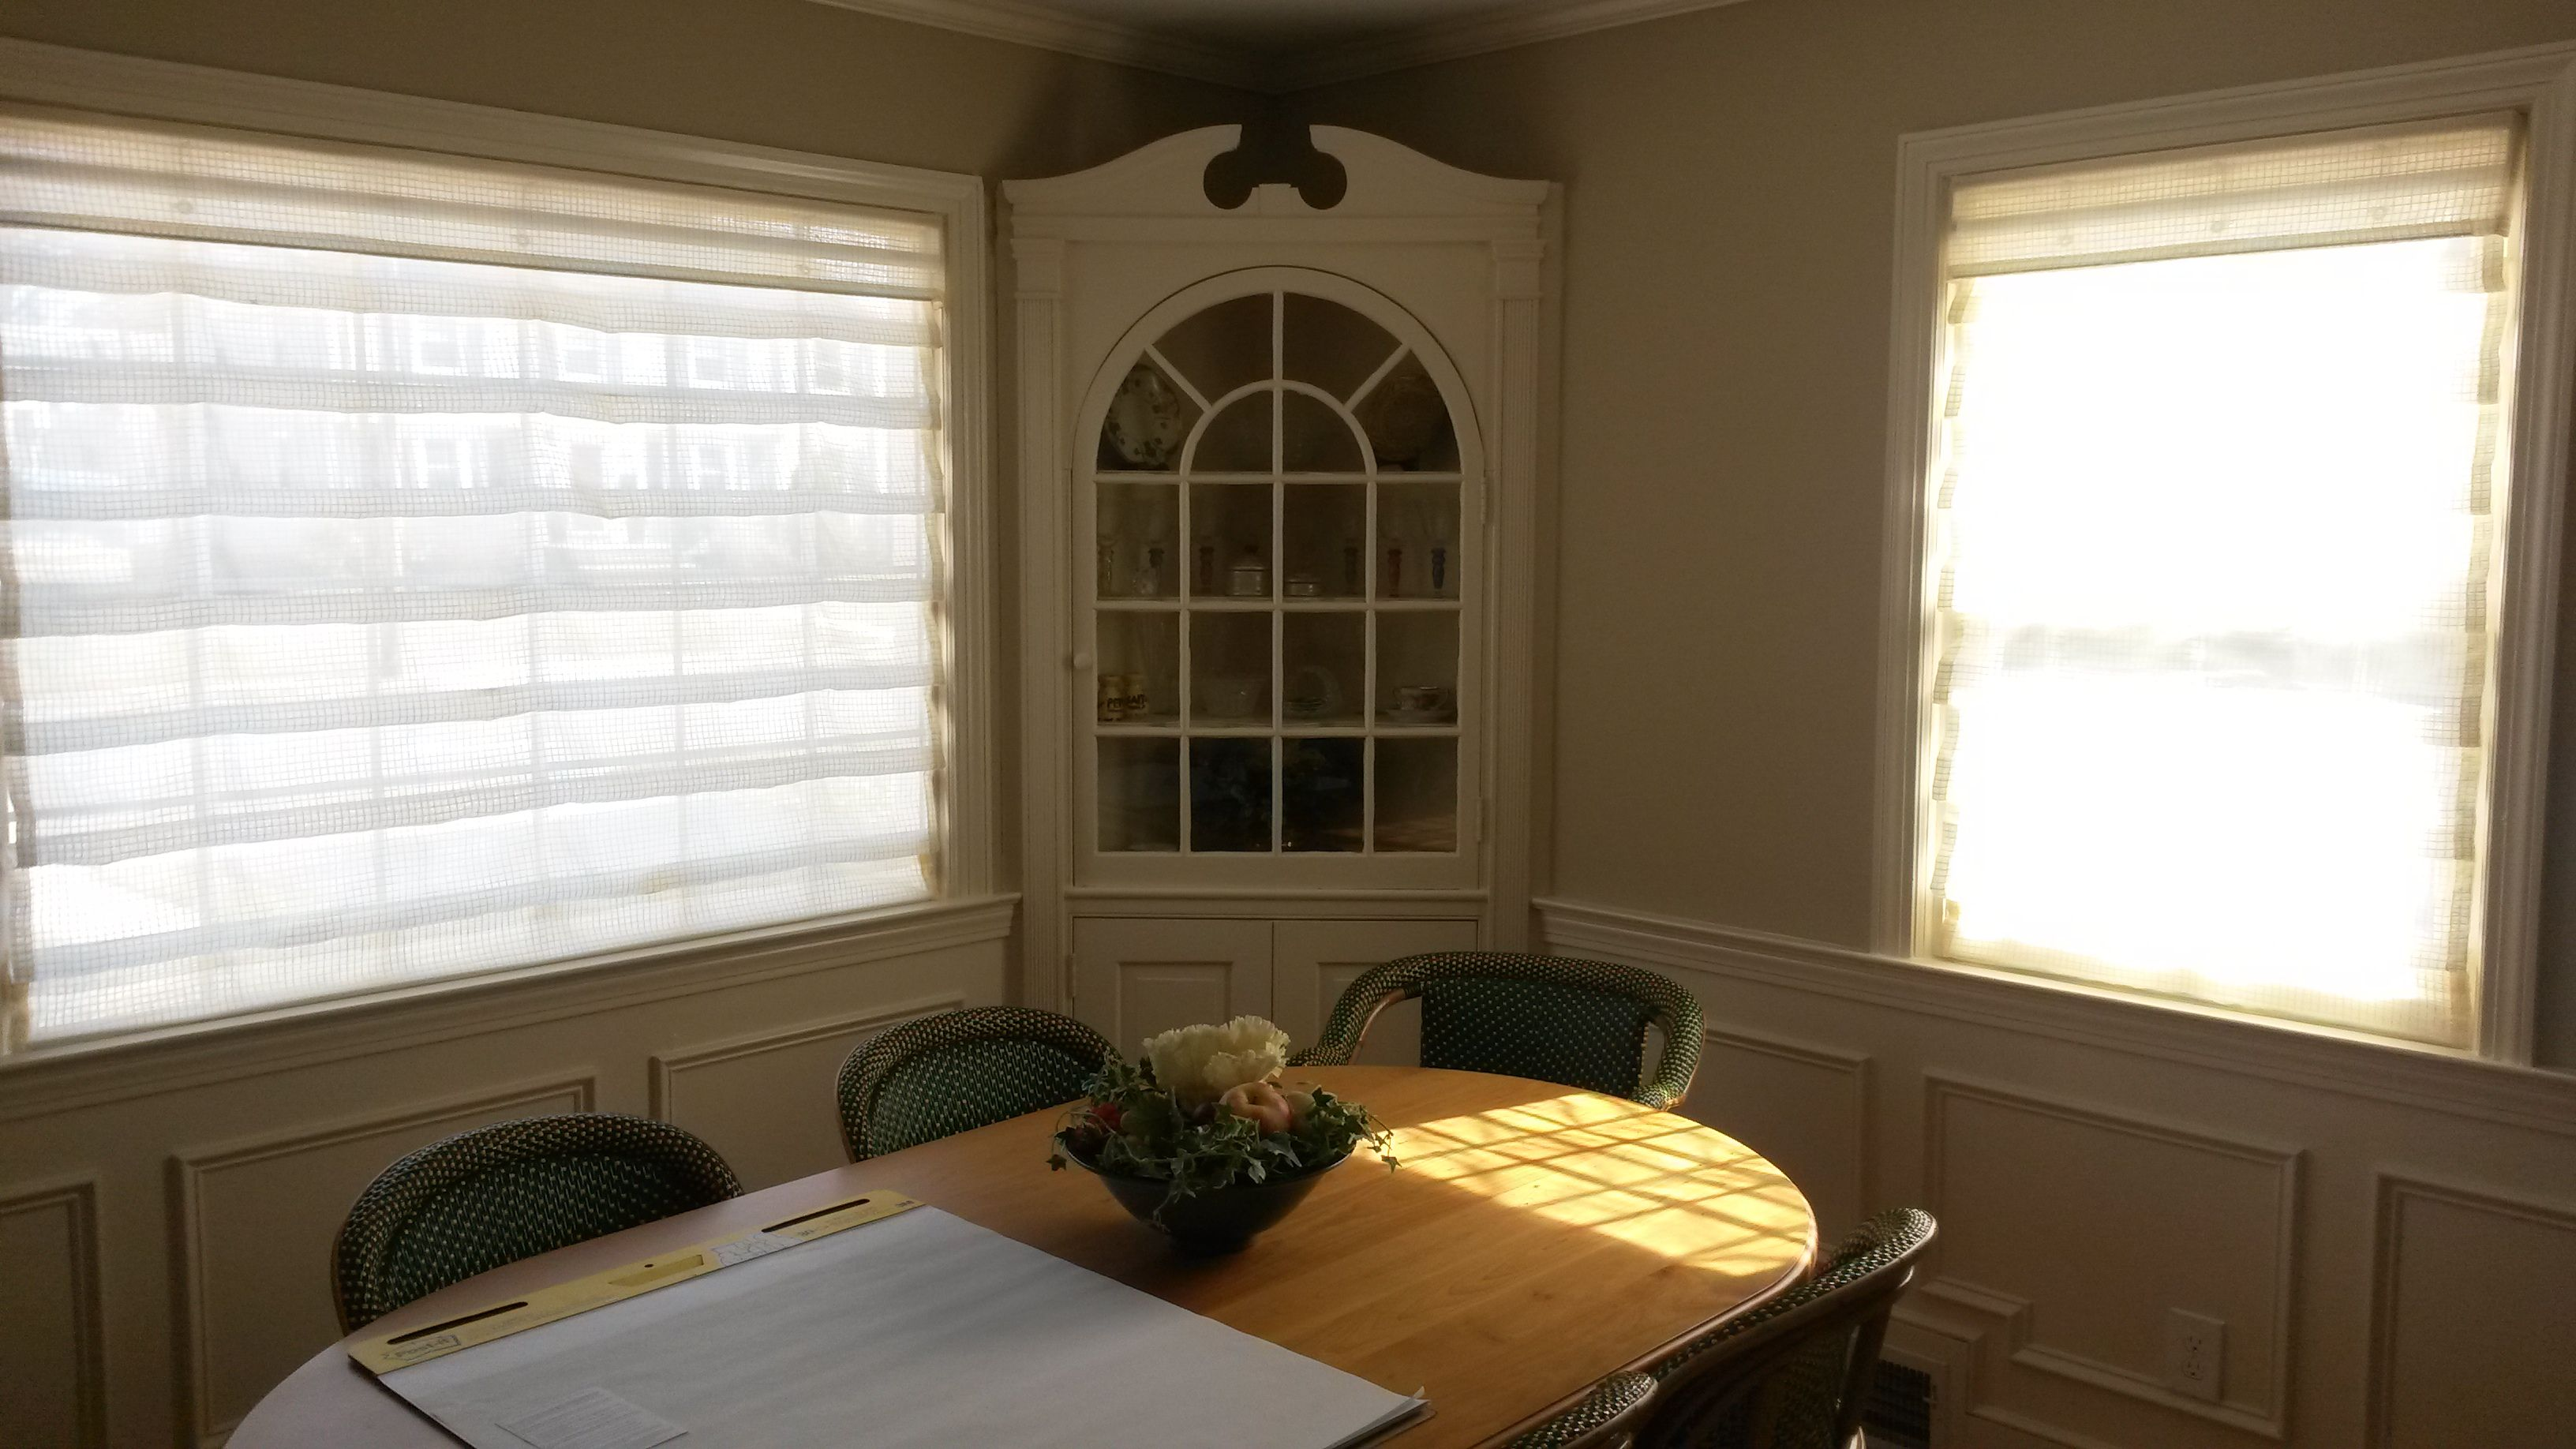 The Solution Is Sheer Hobbled Roman Shades By Horizons